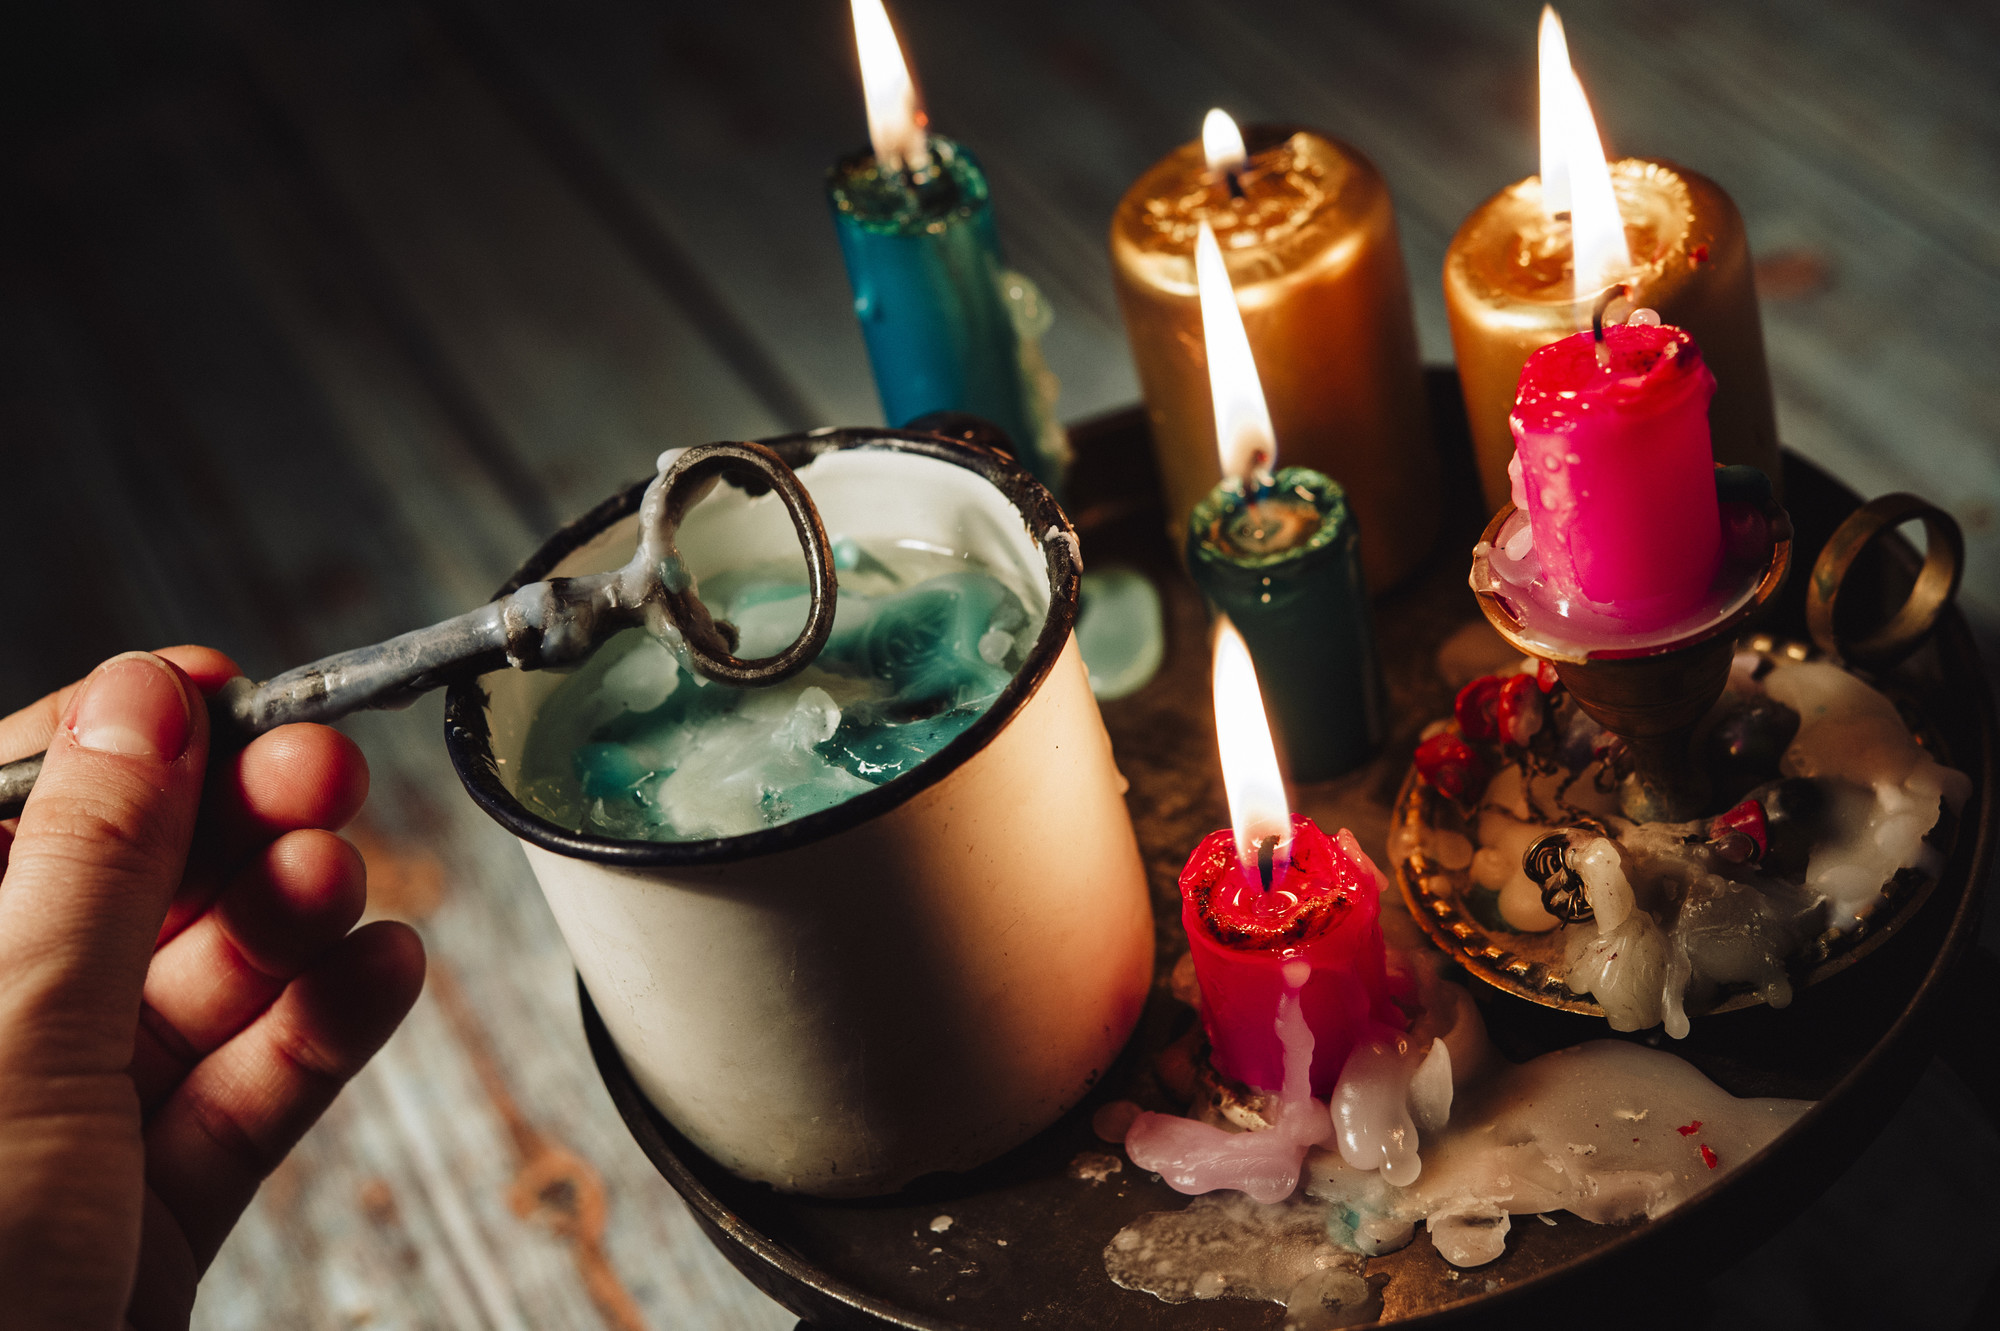 Effective witchcraft love spells in USA /CANADA +256758552799